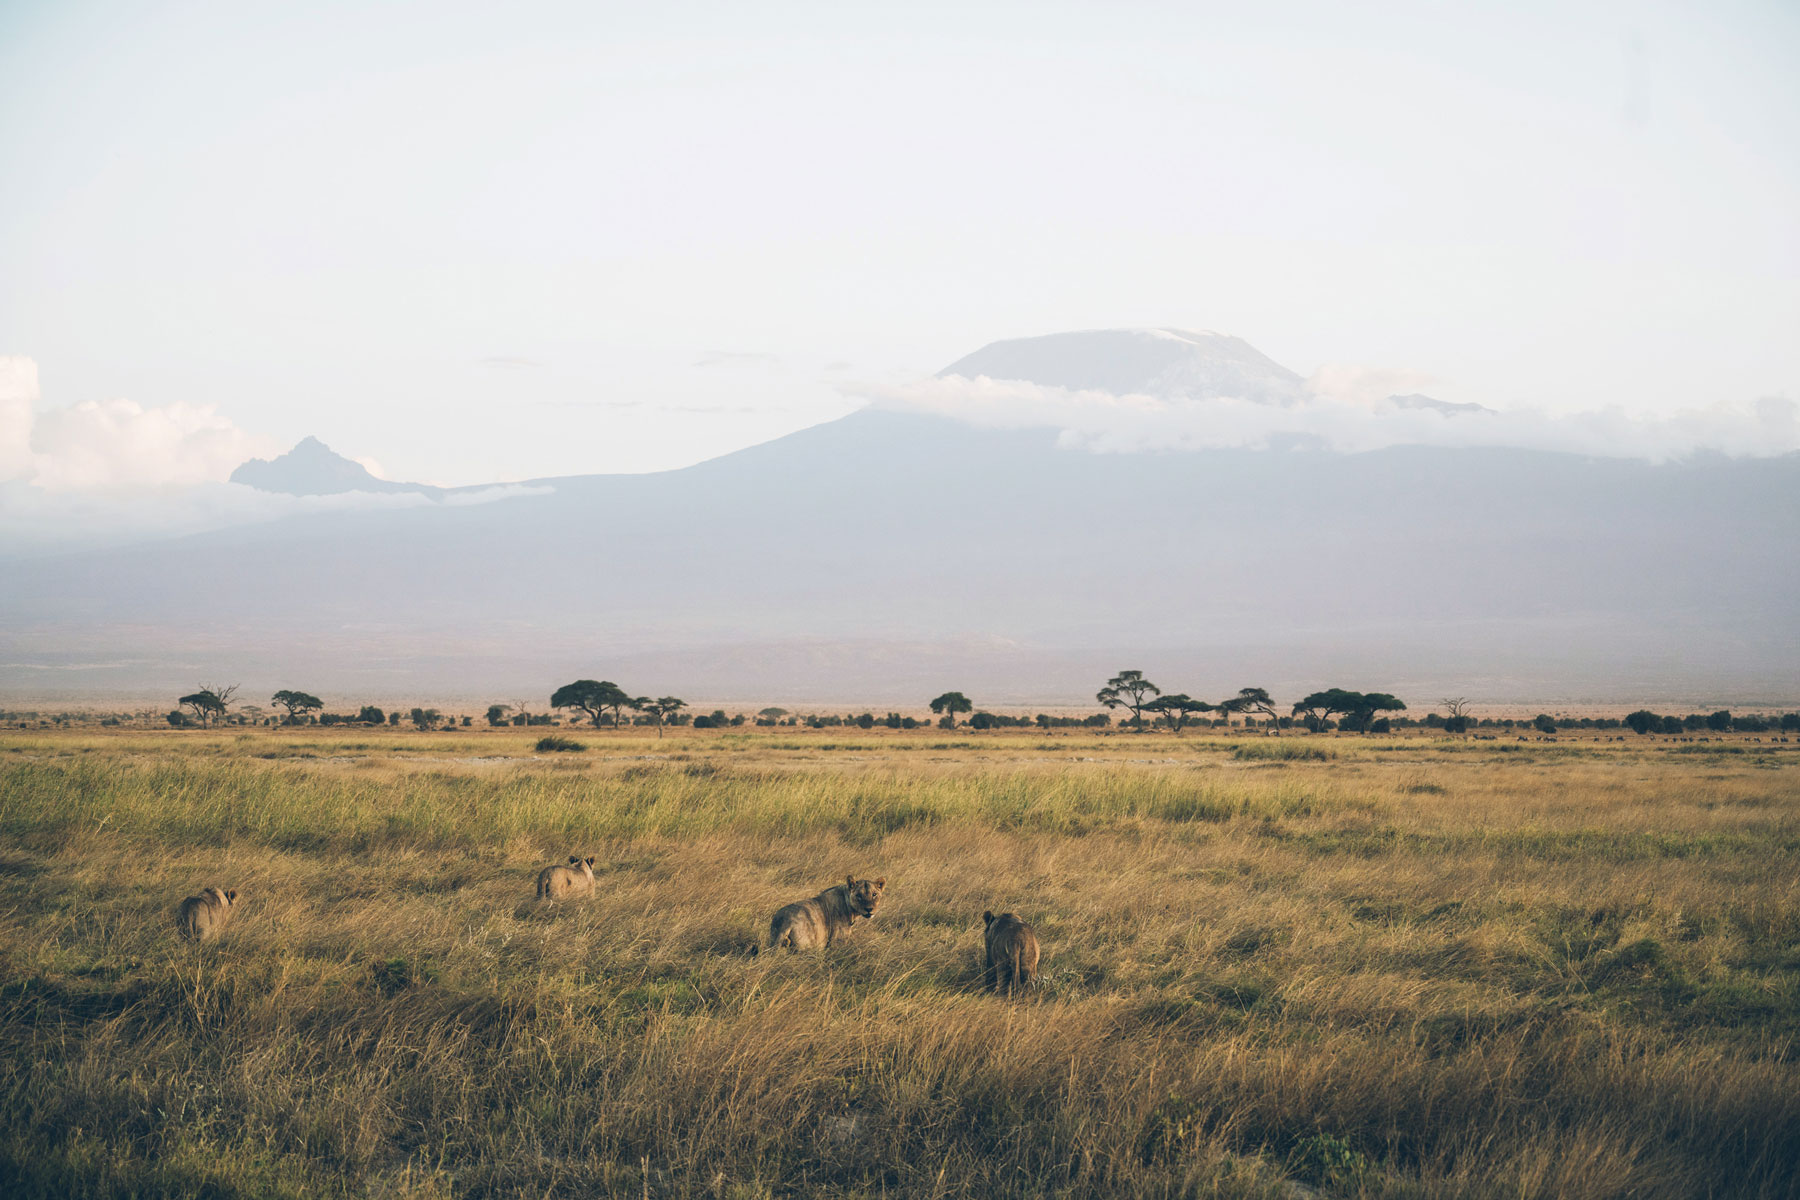 Safari, Parc National Amboseli, Kenya